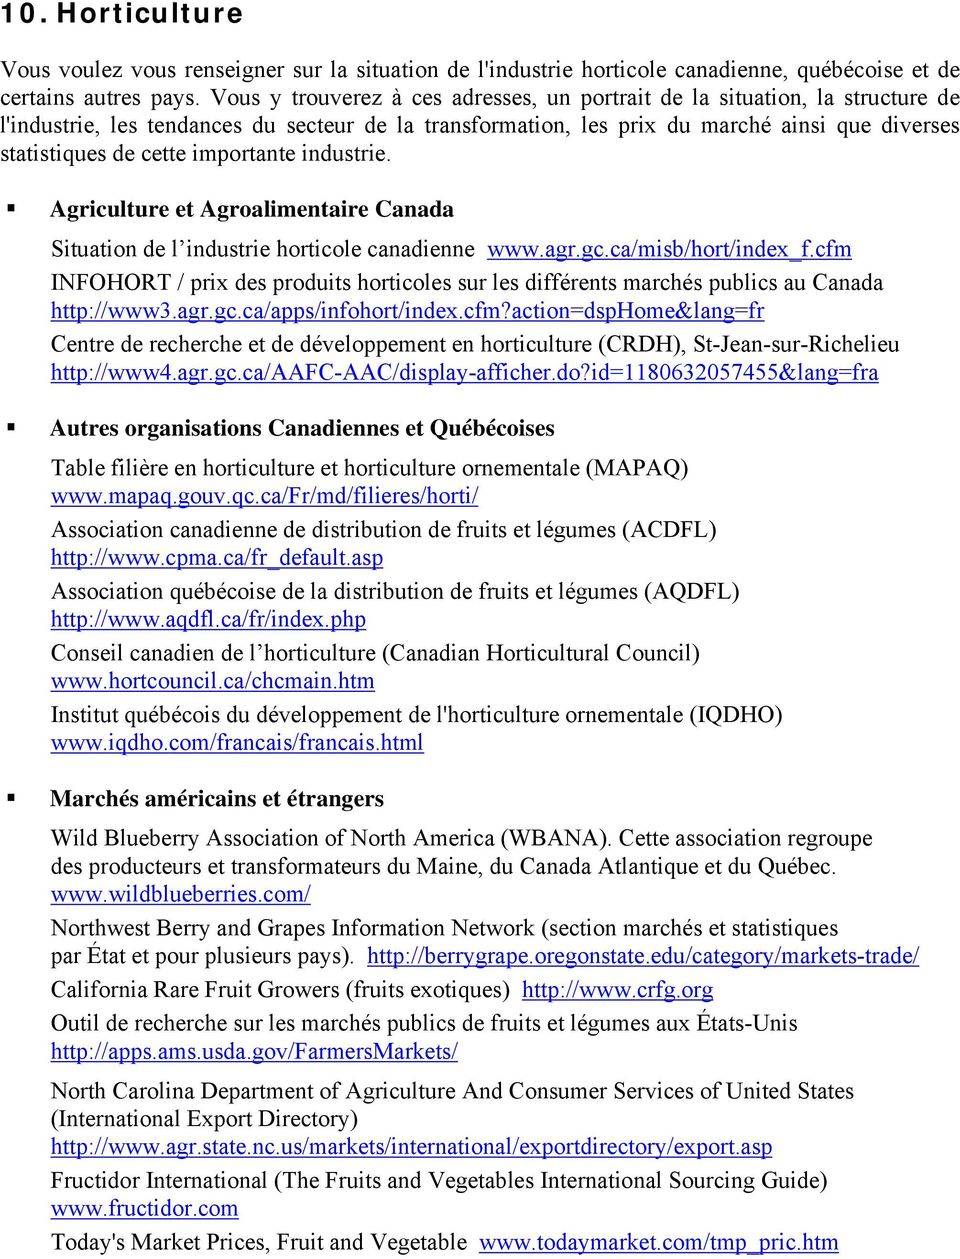 importante industrie. Agriculture et Agroalimentaire Canada Situation de l industrie horticole canadienne www.agr.gc.ca/misb/hort/index_f.